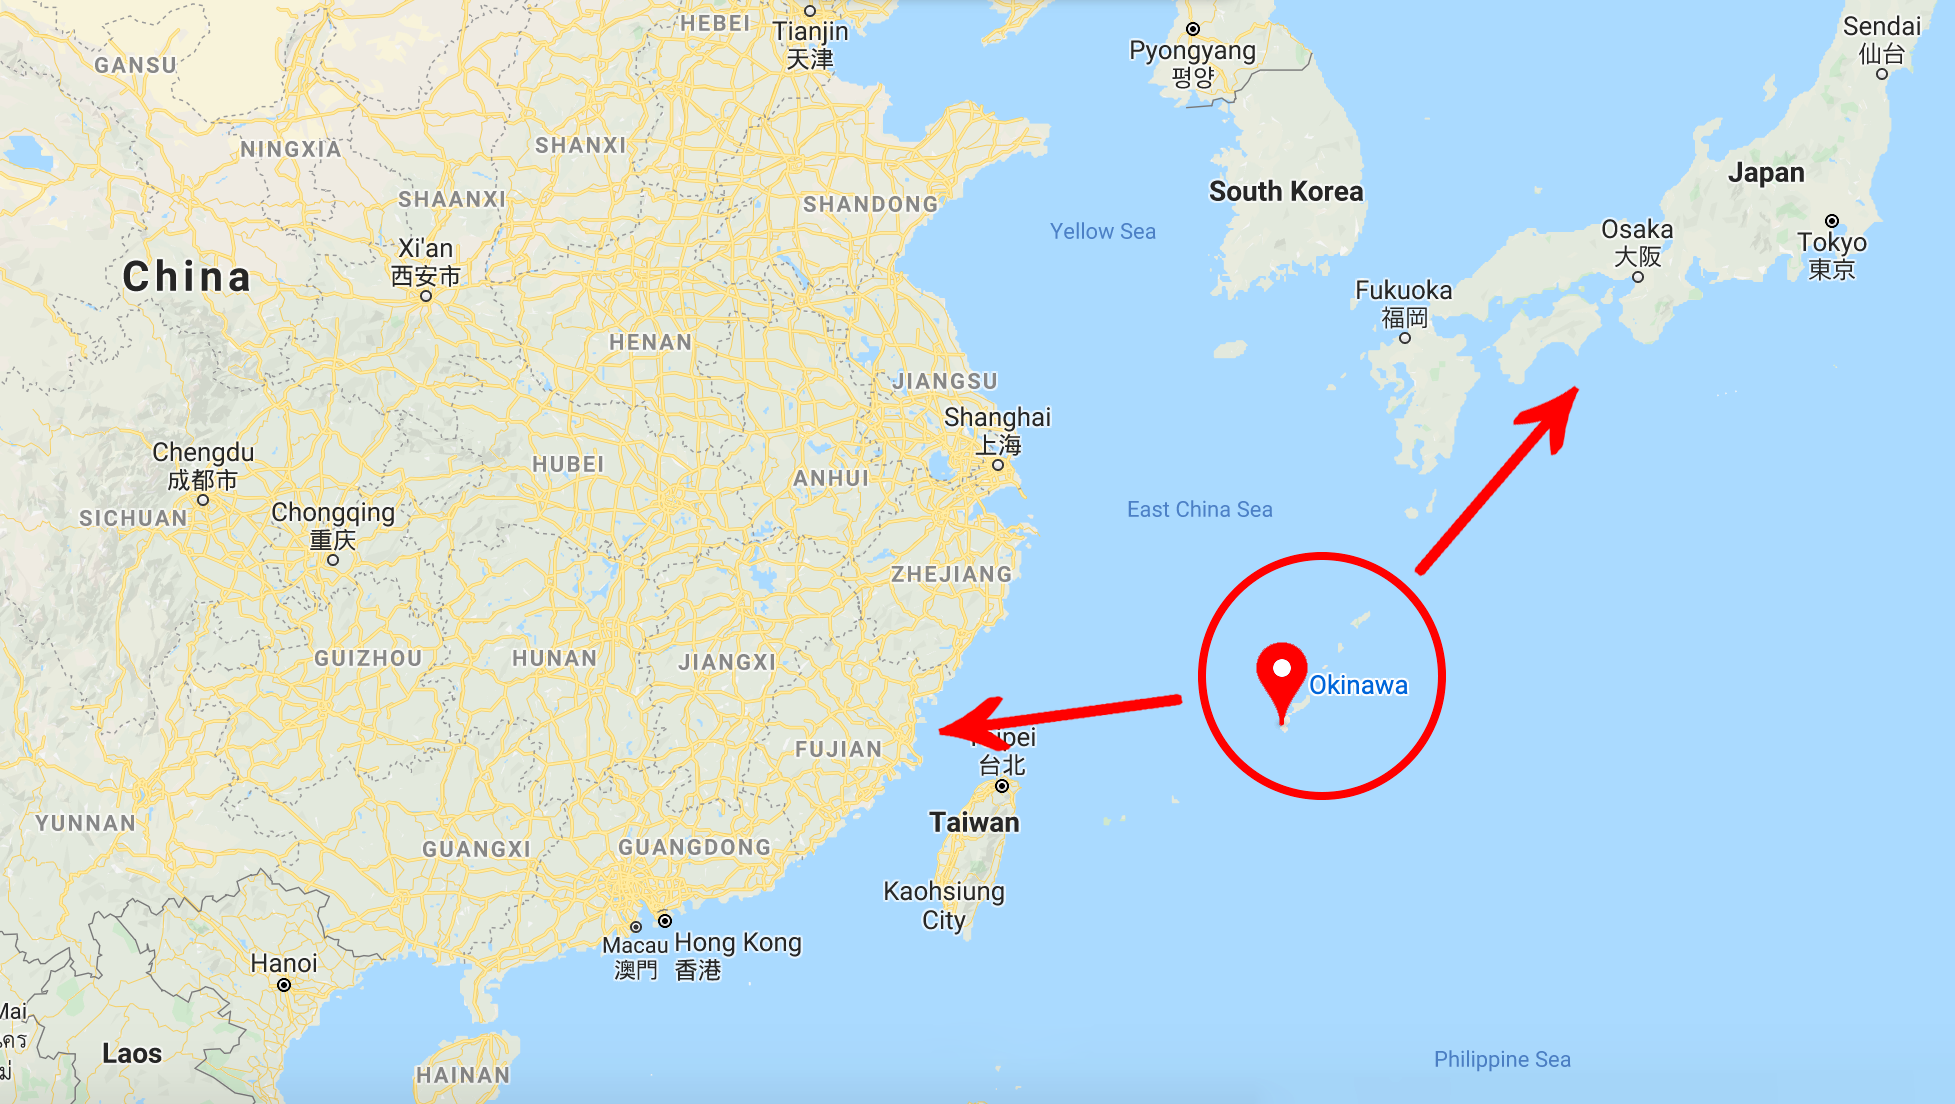 Photo 14 Courtesy: Google Maps, Map of East Asia, where Okinawa can be seen in relation to Japan and China.